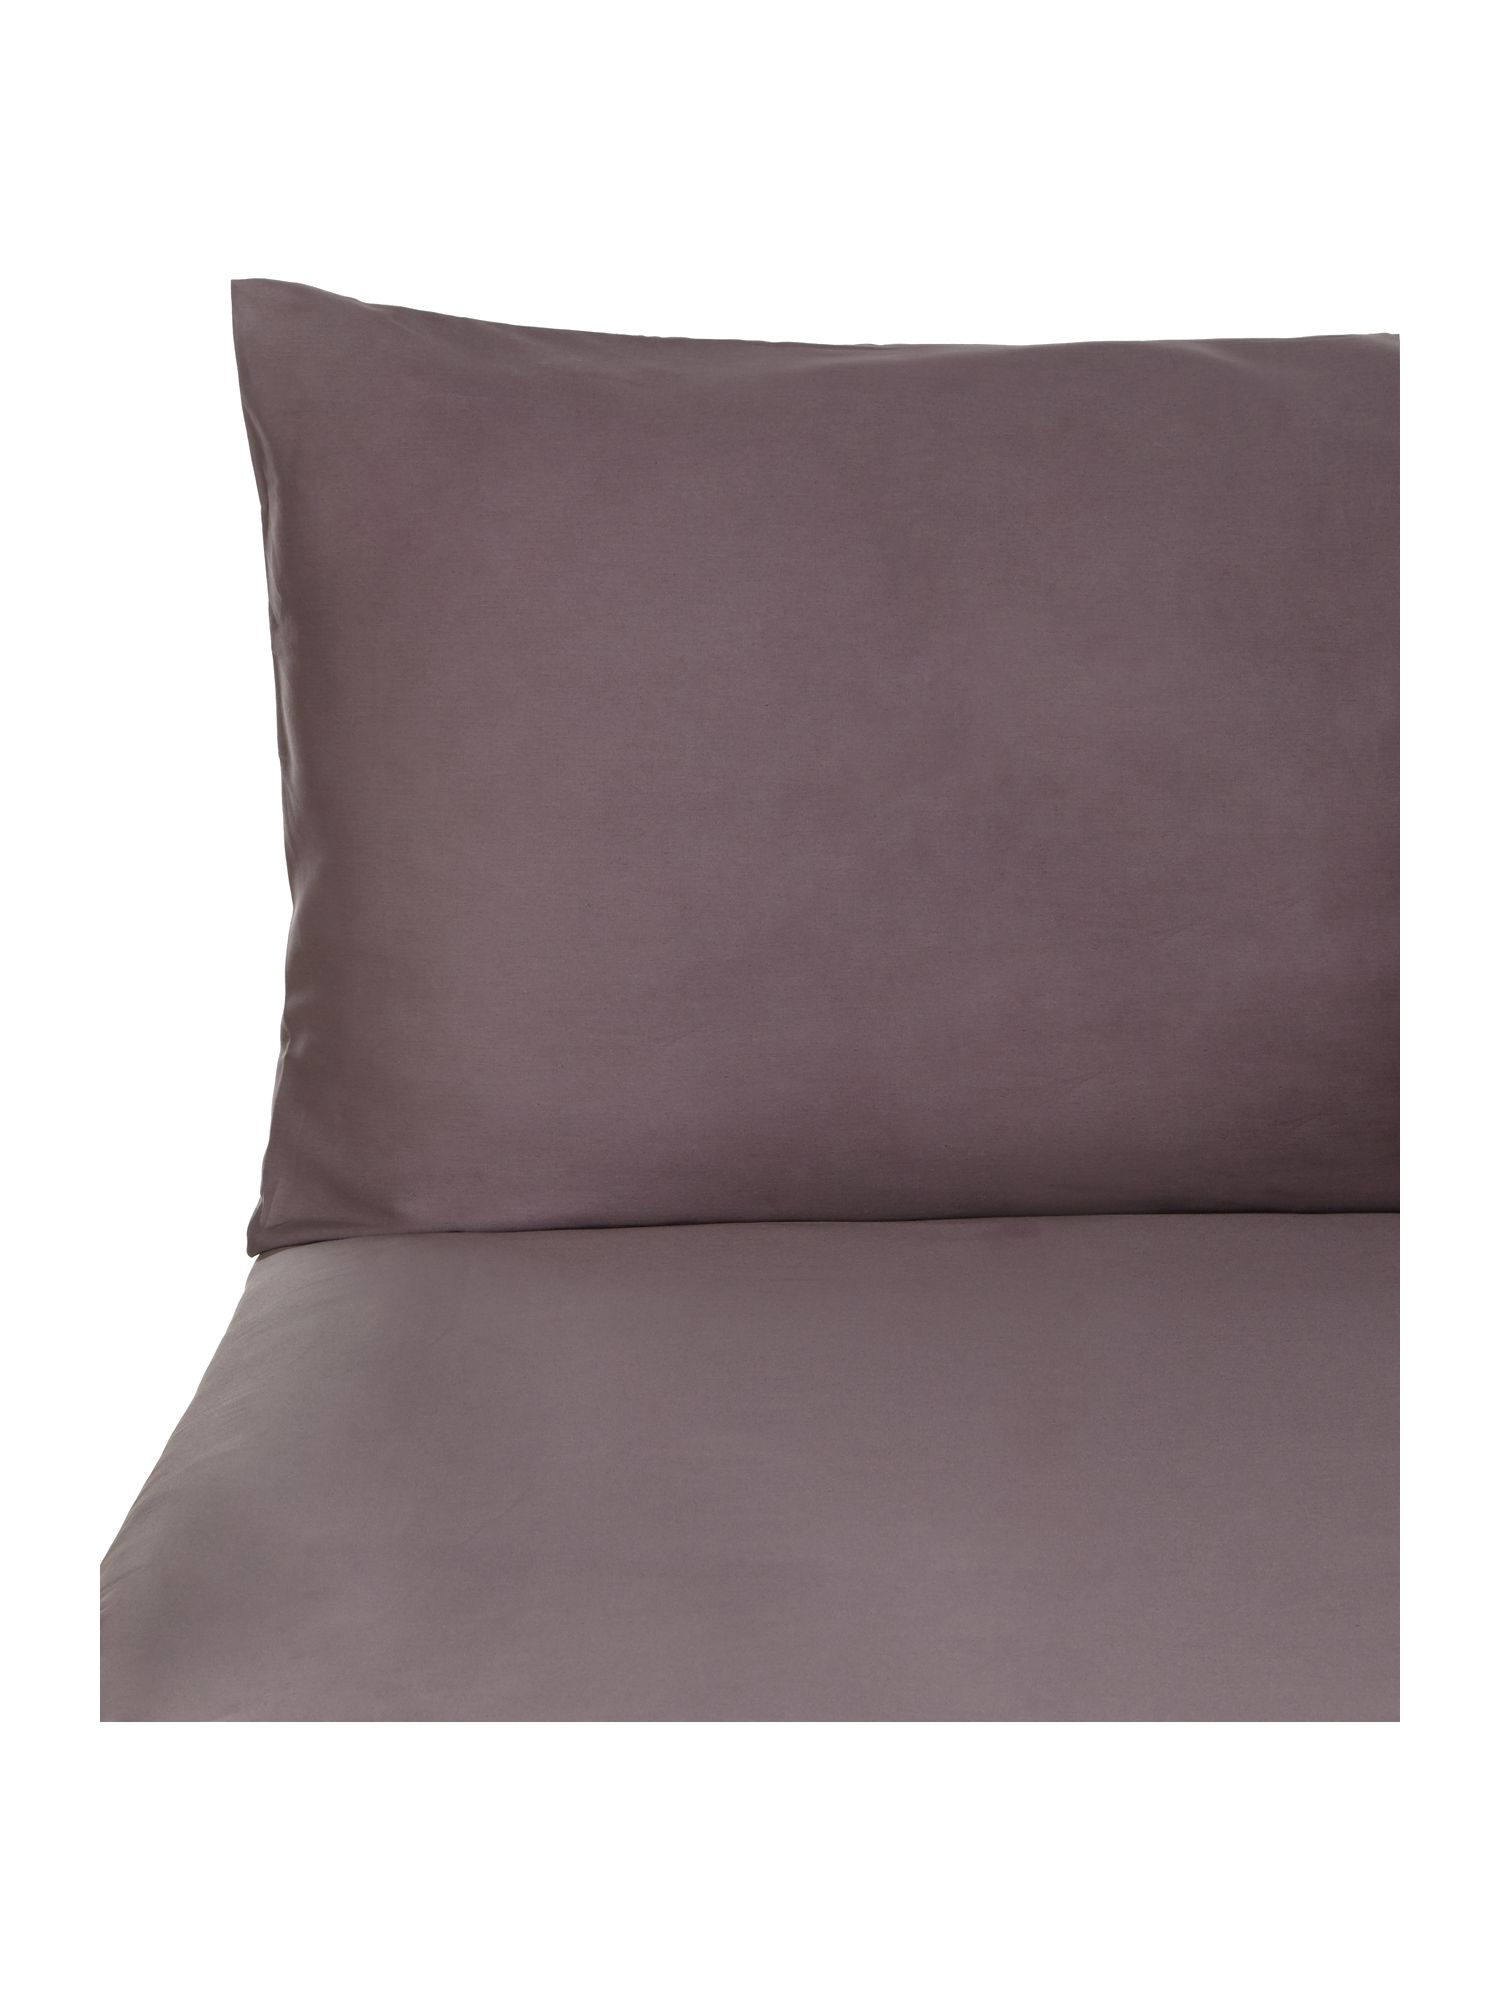 Graphite super king fitted sheet